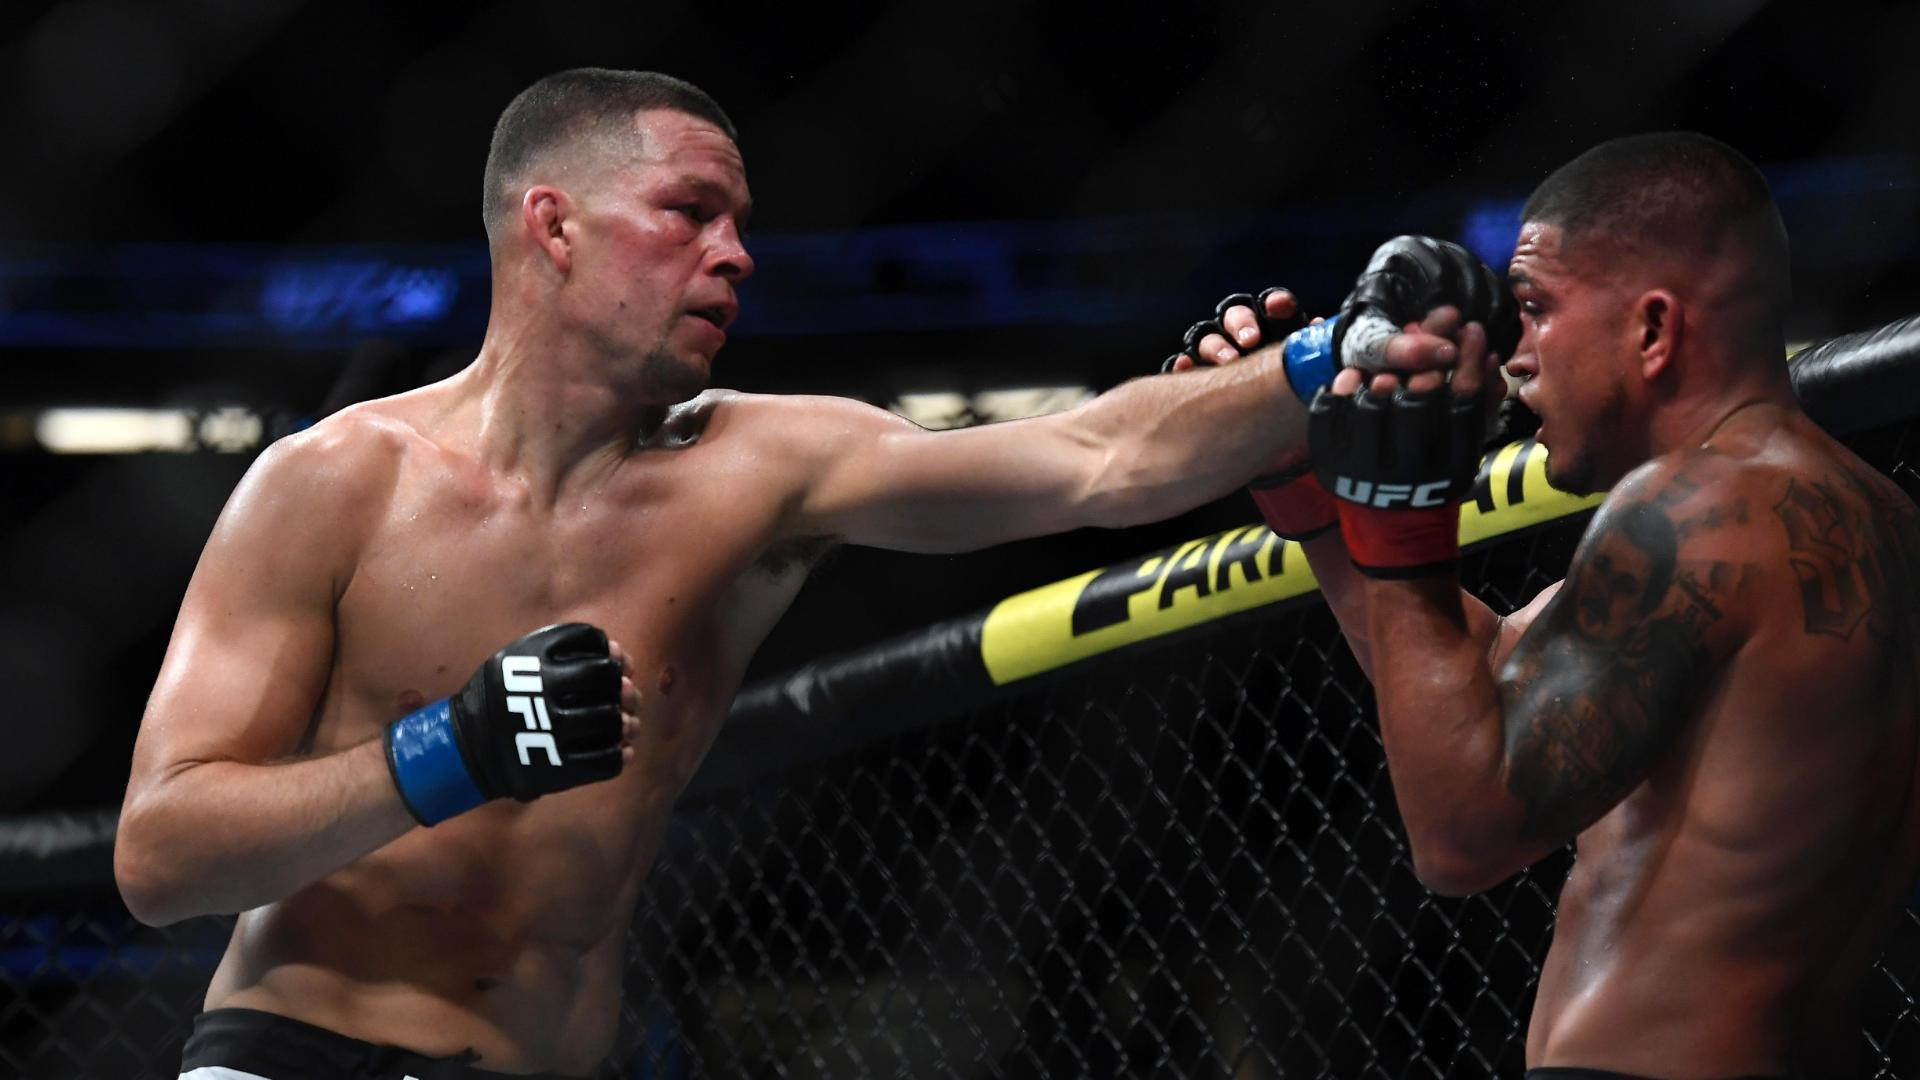 Diaz beats Pettis in UFC return